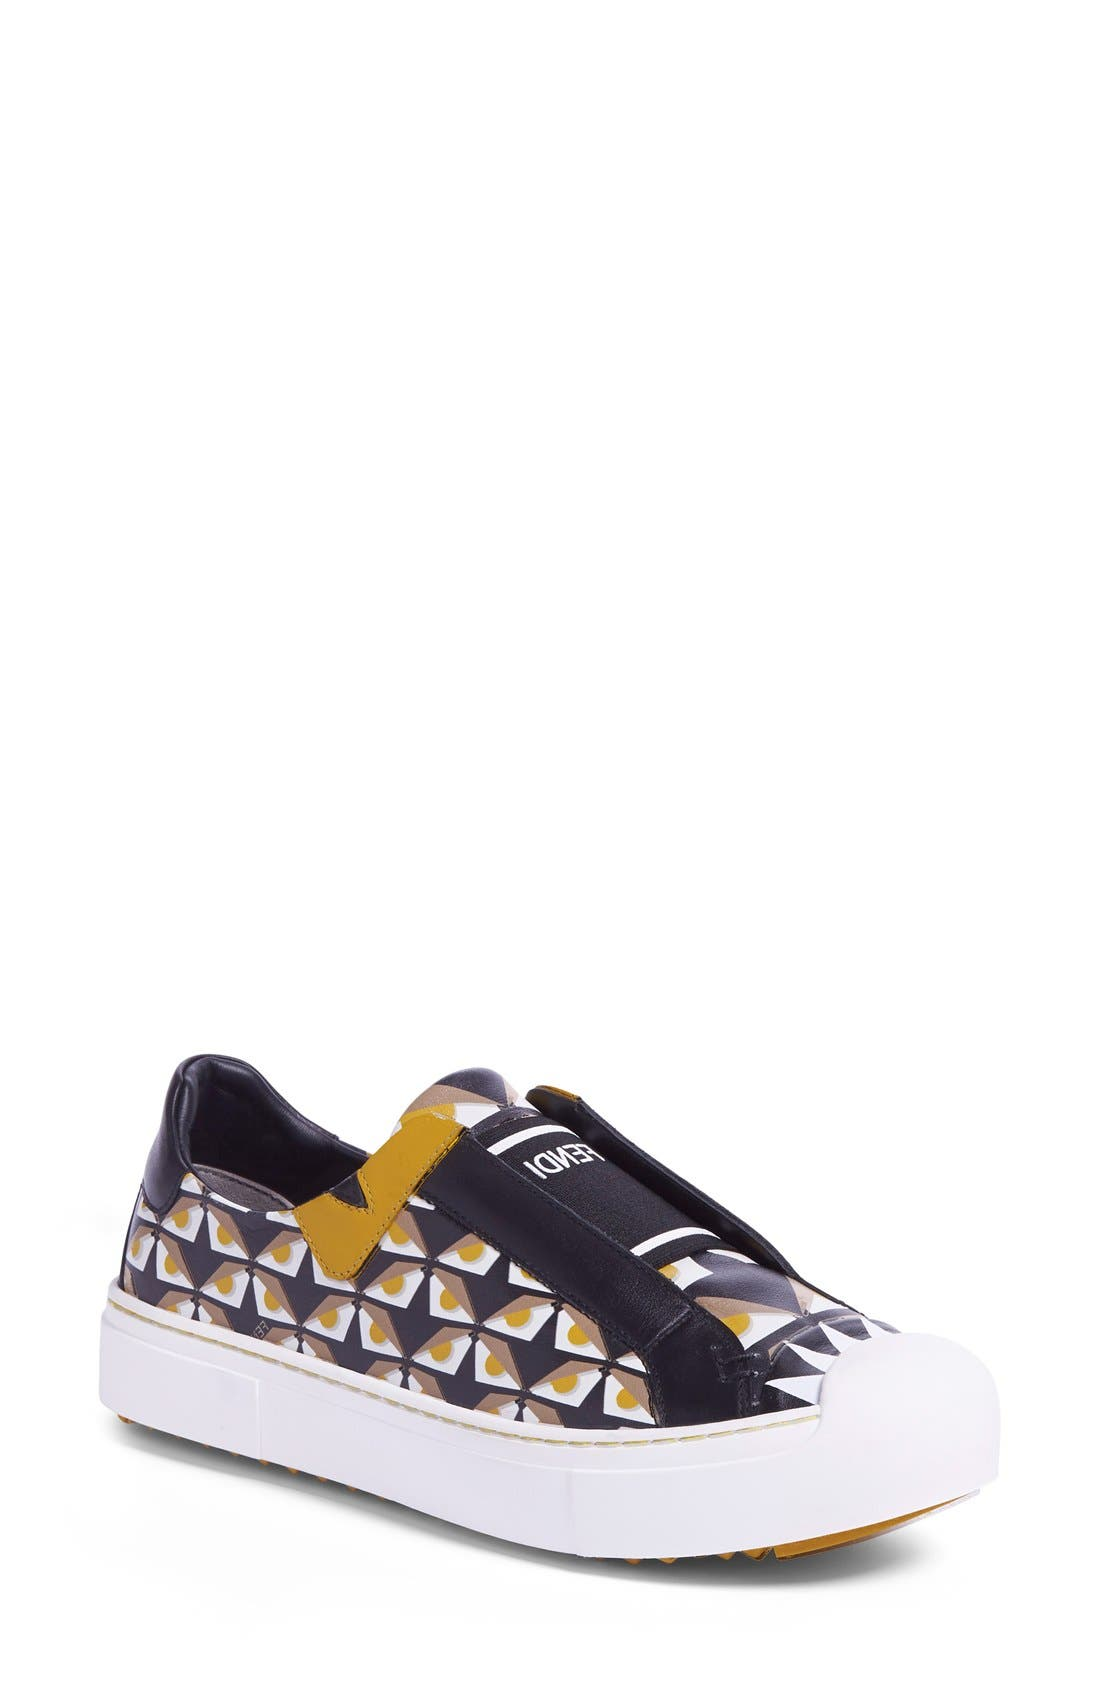 Alternate Image 1 Selected - Fendi 'Bugs' Slip-On Sneaker (Women)